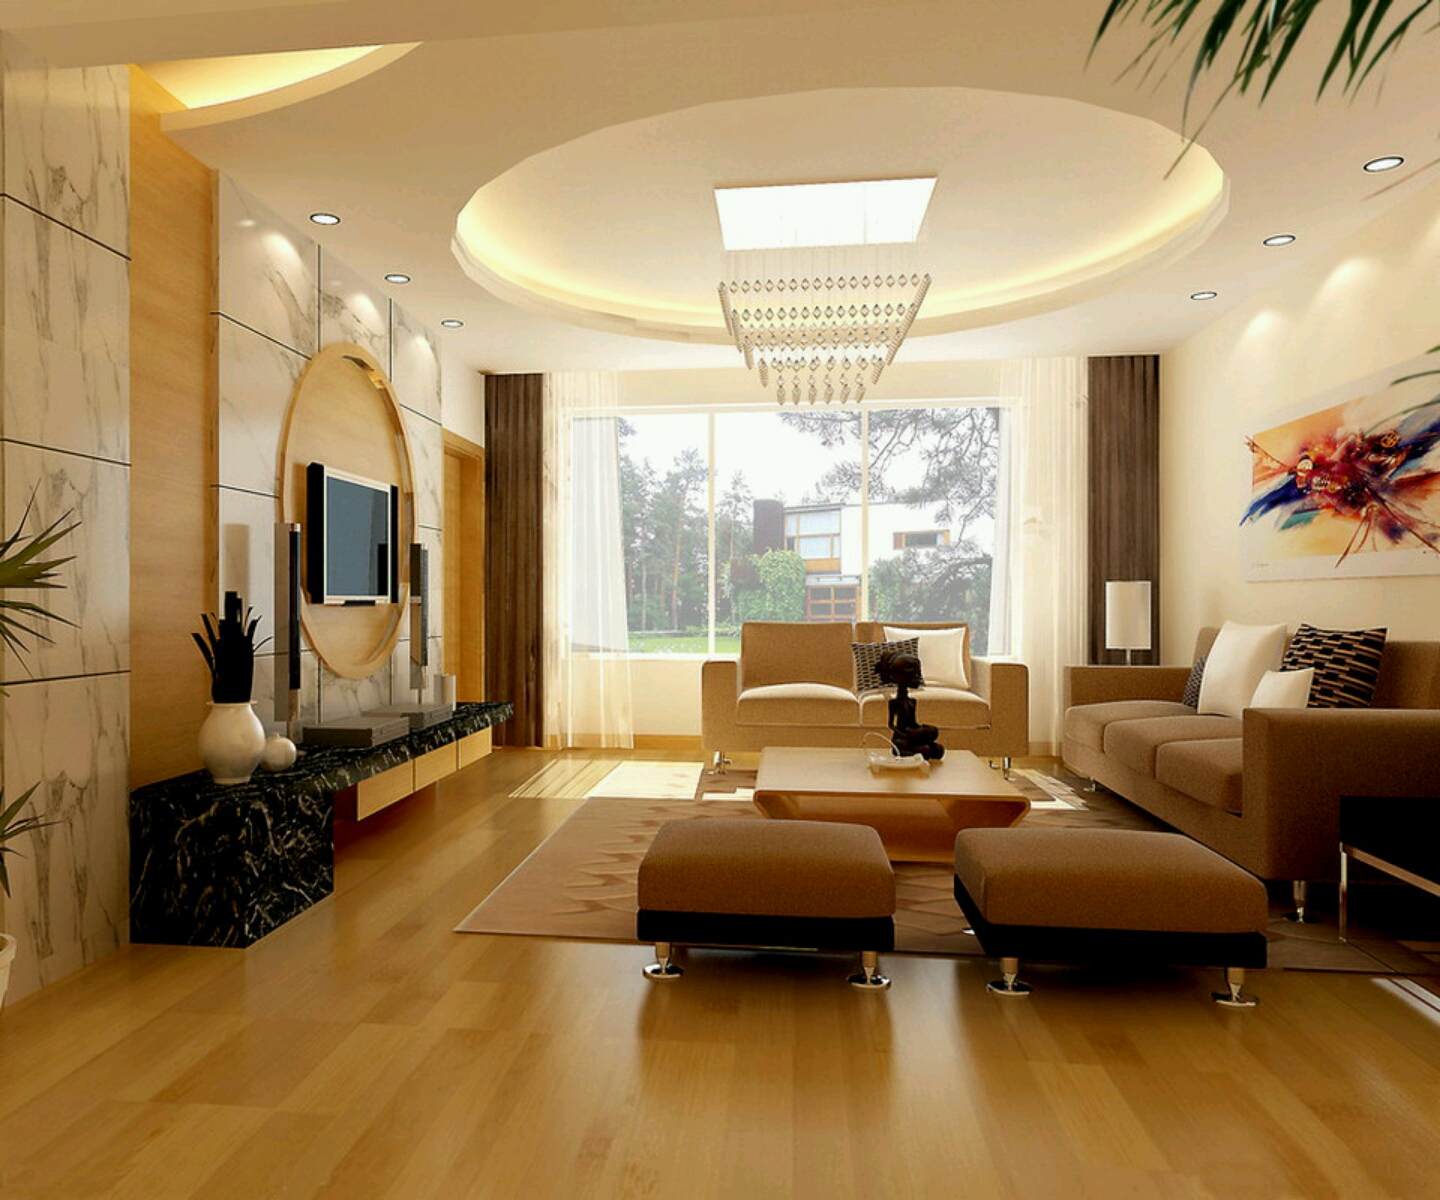 Modern interior decoration living rooms ceiling designs for Living room picture ideas